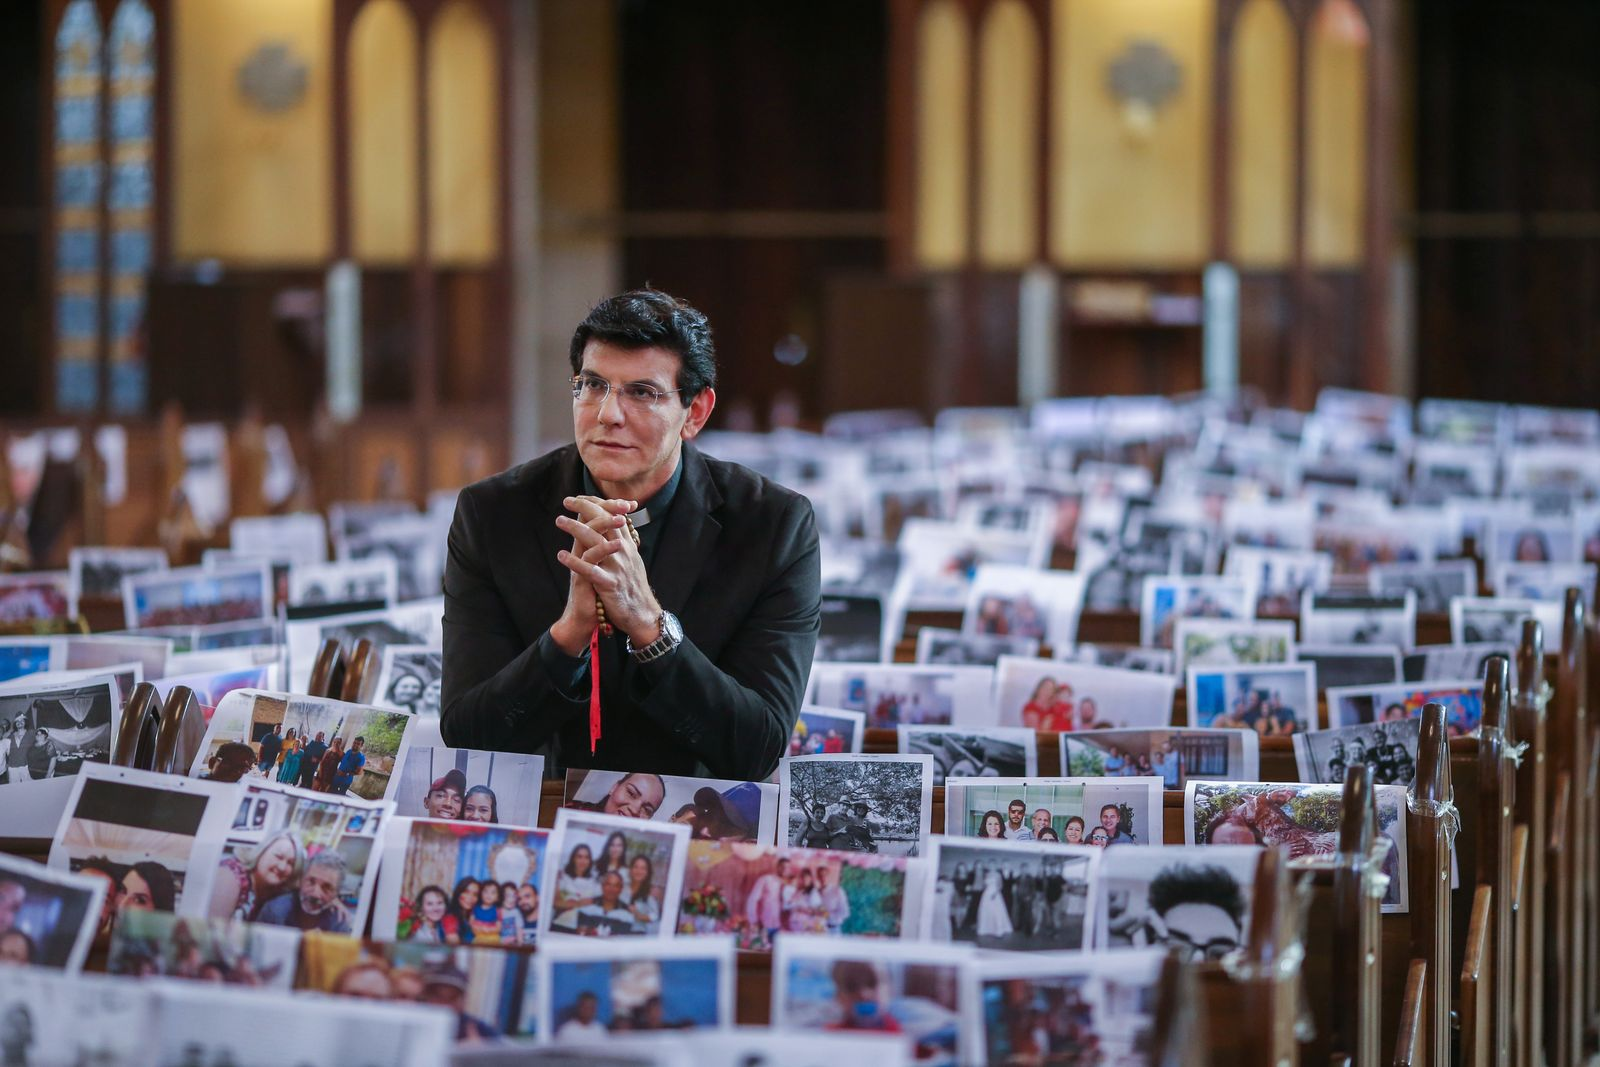 Catholic priest Manzotti prays before a mass with photos of the faithful over the church's banks during the coronavirus disease (COVID-19) outbreak in Curitiba